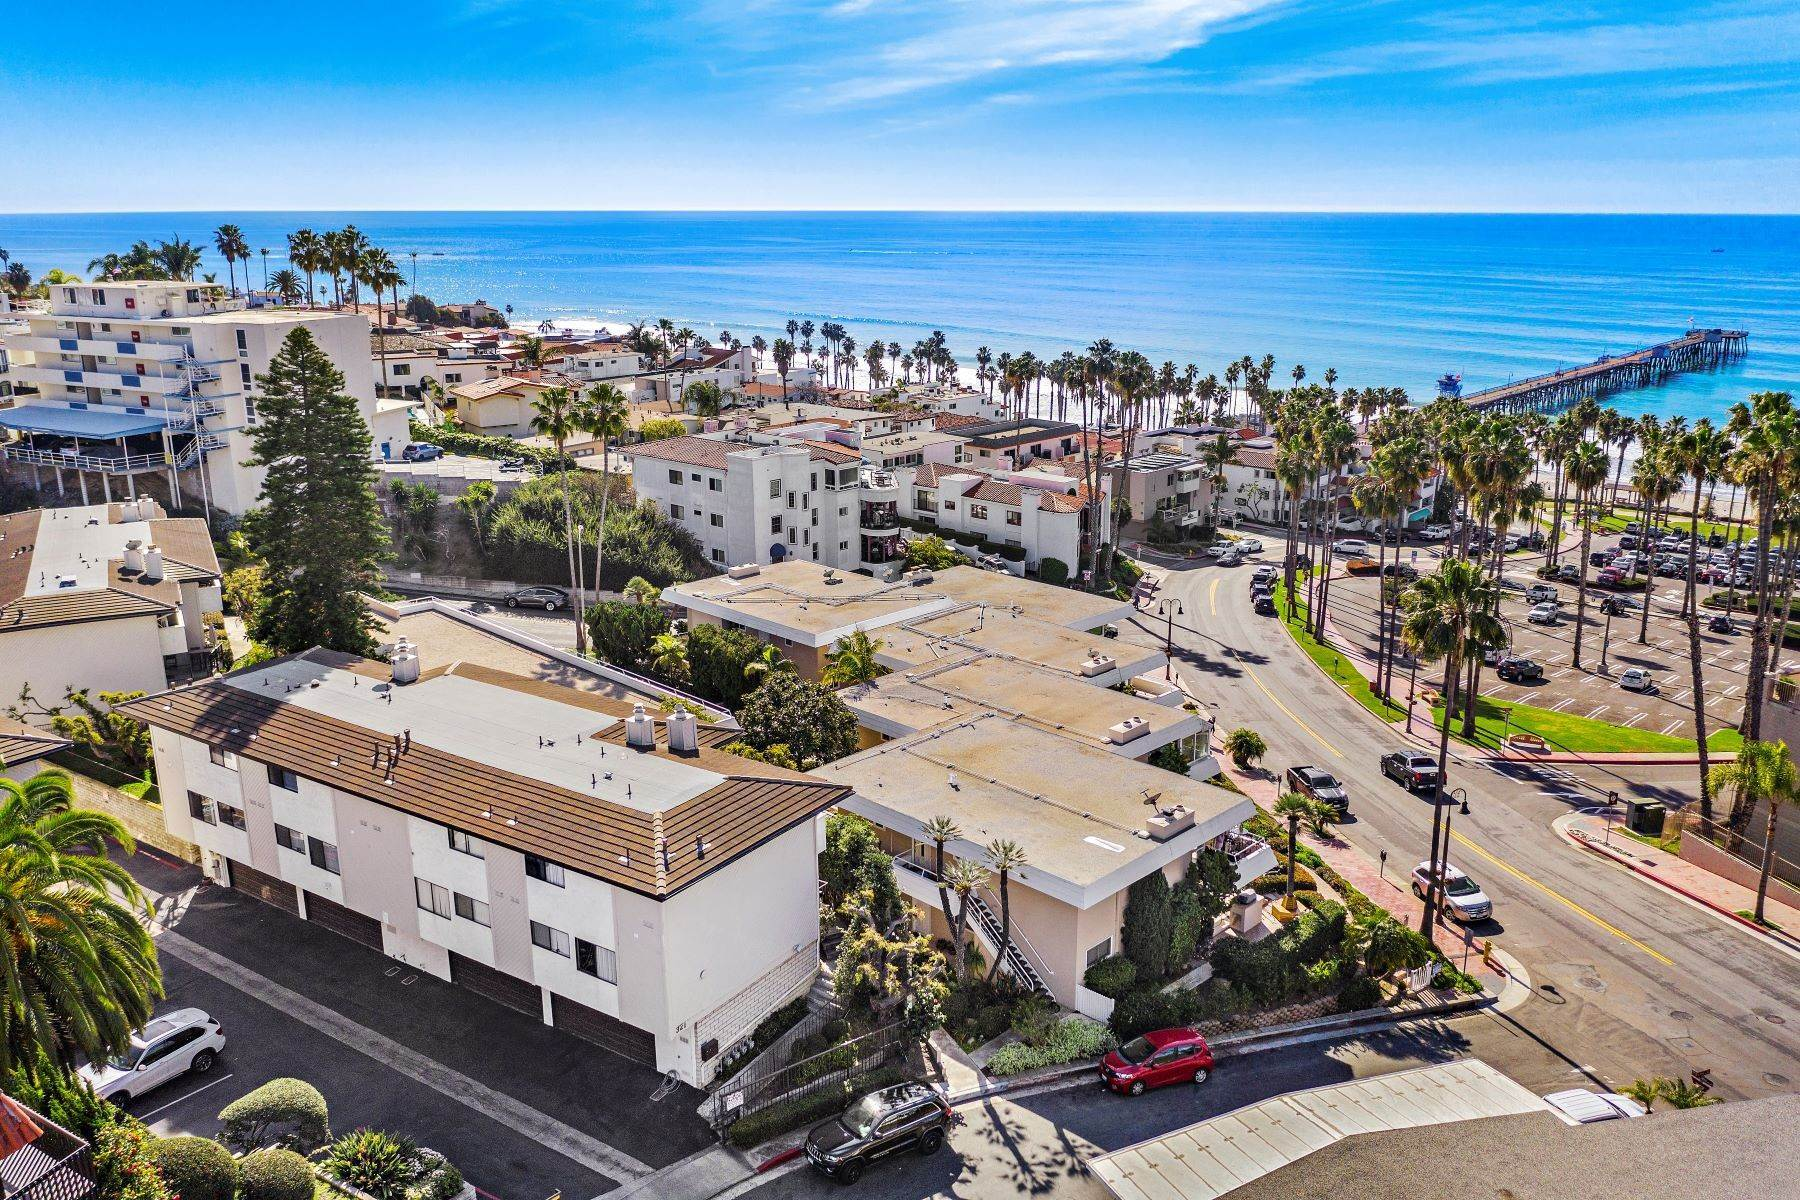 5. Condominiums for Sale at 321 Acebo Lane Unit #C, San Clemente, CA 92672 321 Acebo Lane, Unit #C San Clemente, California 92672 United States